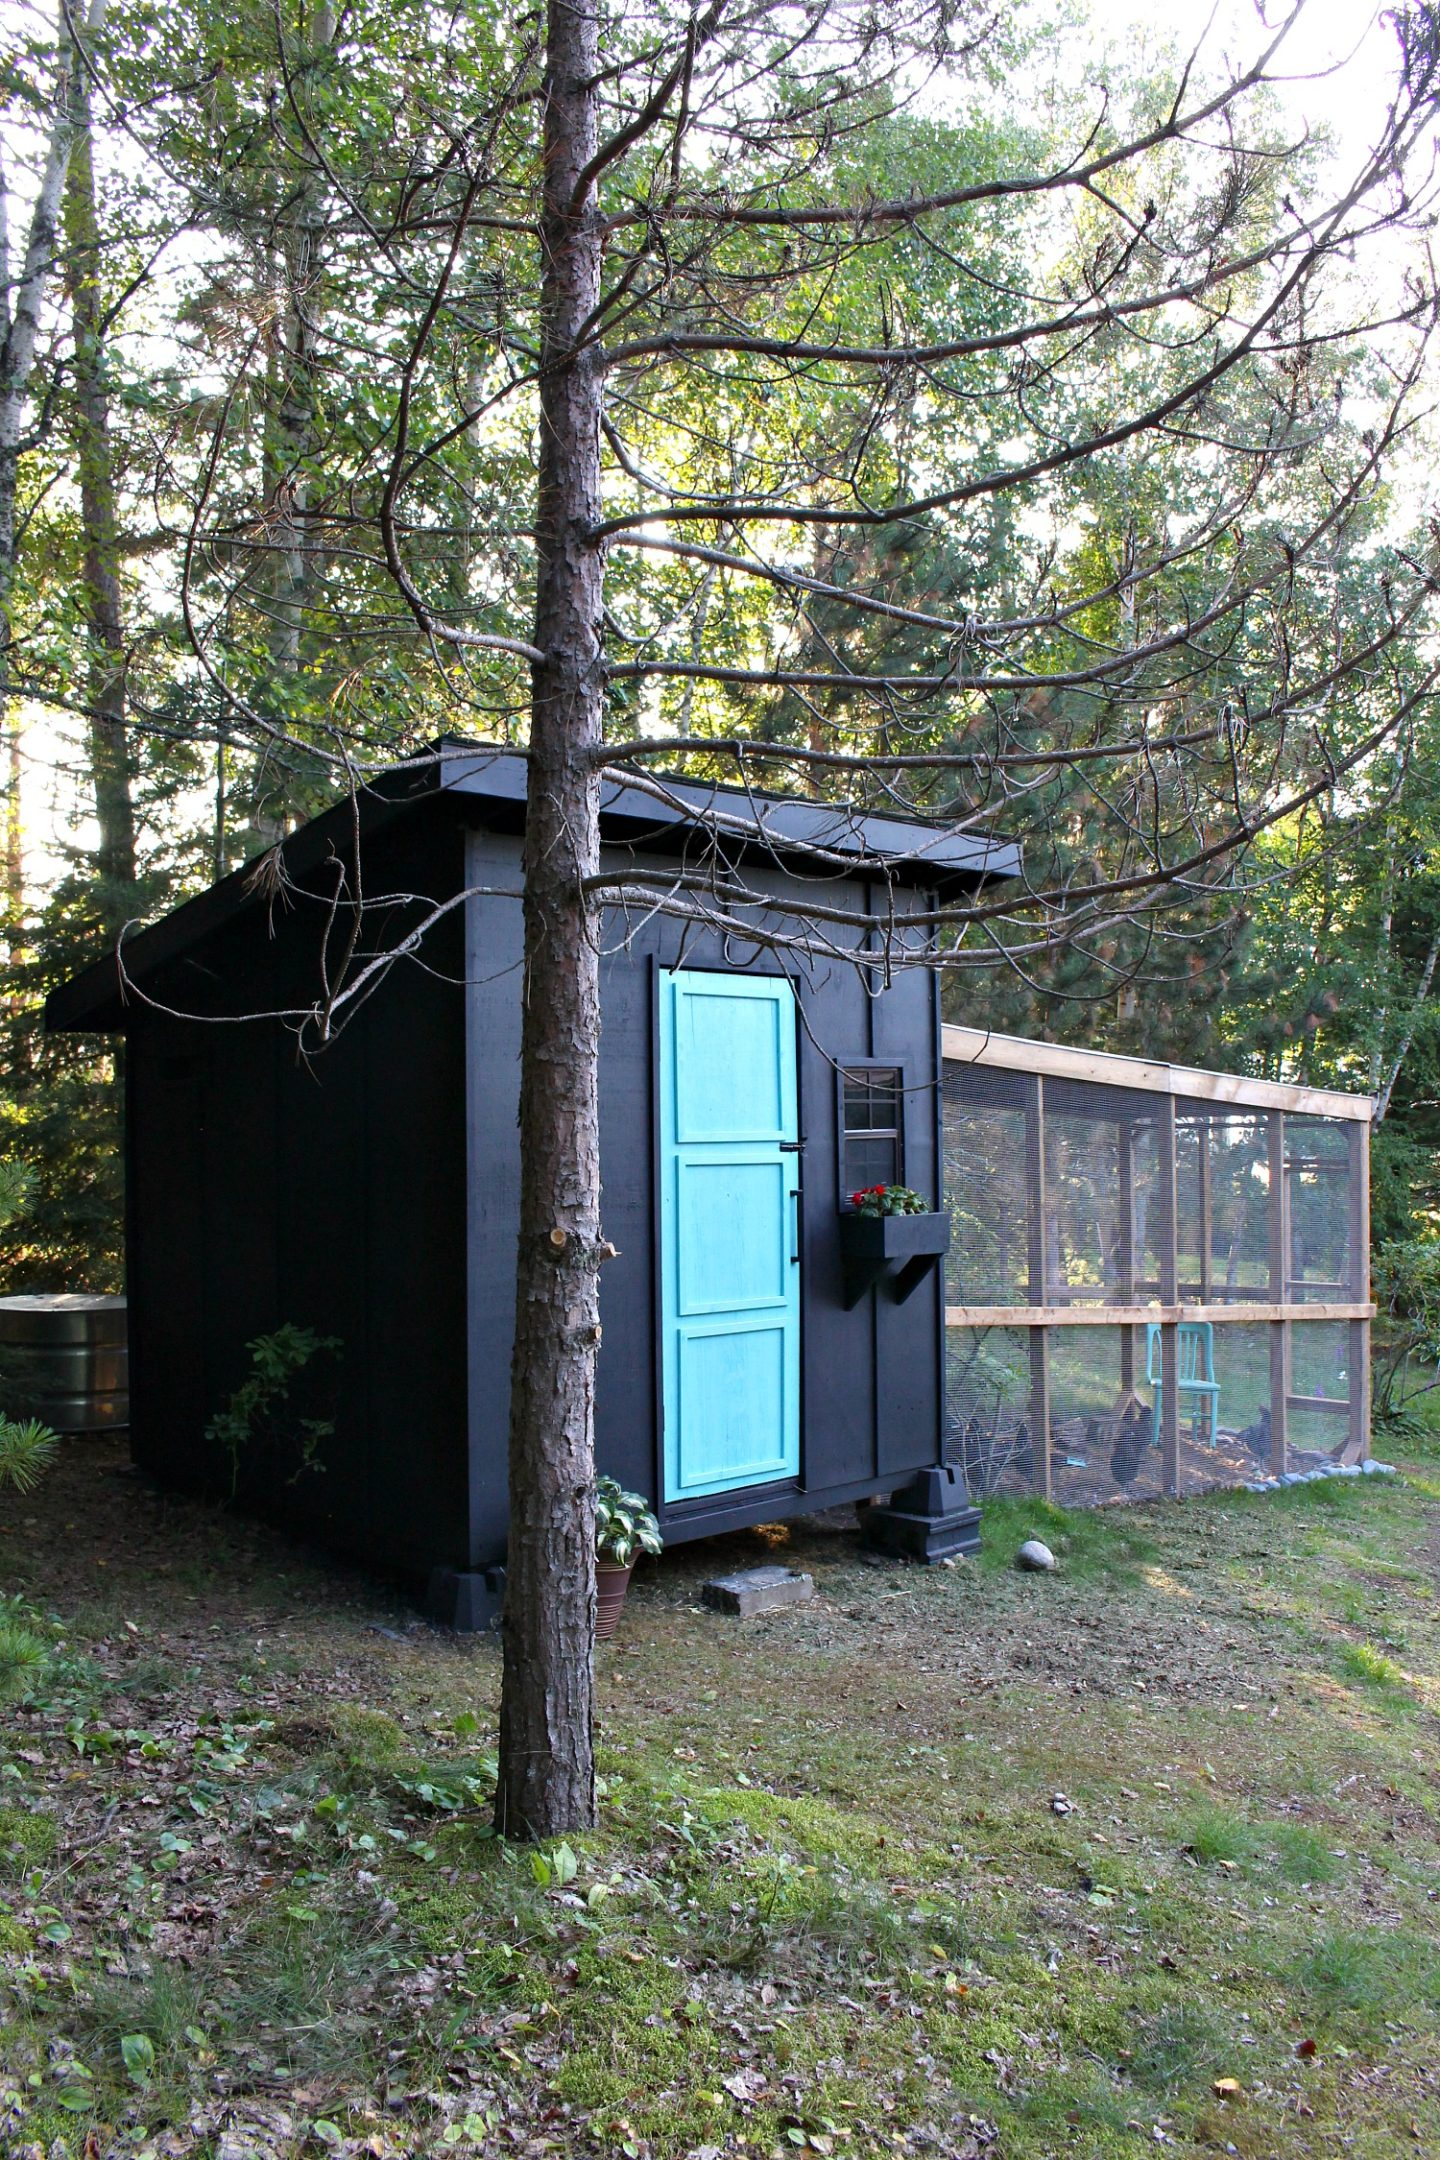 Modern Black Chicken Coop Design with Covered Run and Aqua Door